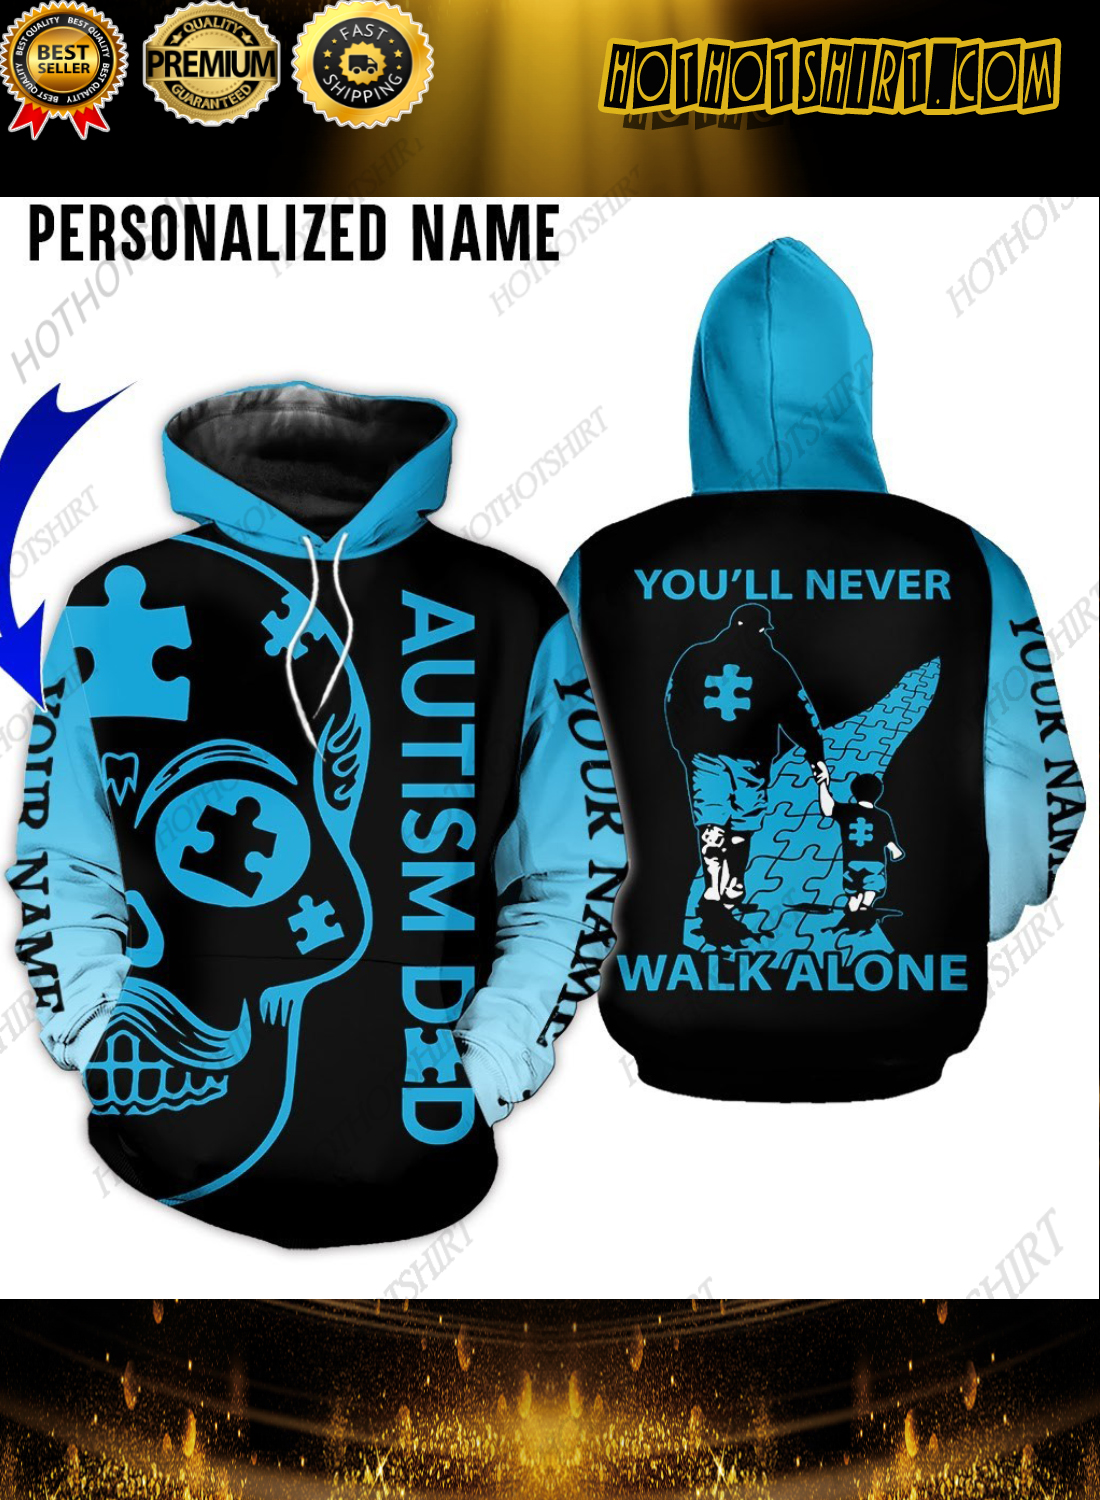 Personalized Name Autism Dad You'll Never Walk Alone 3D Shirts